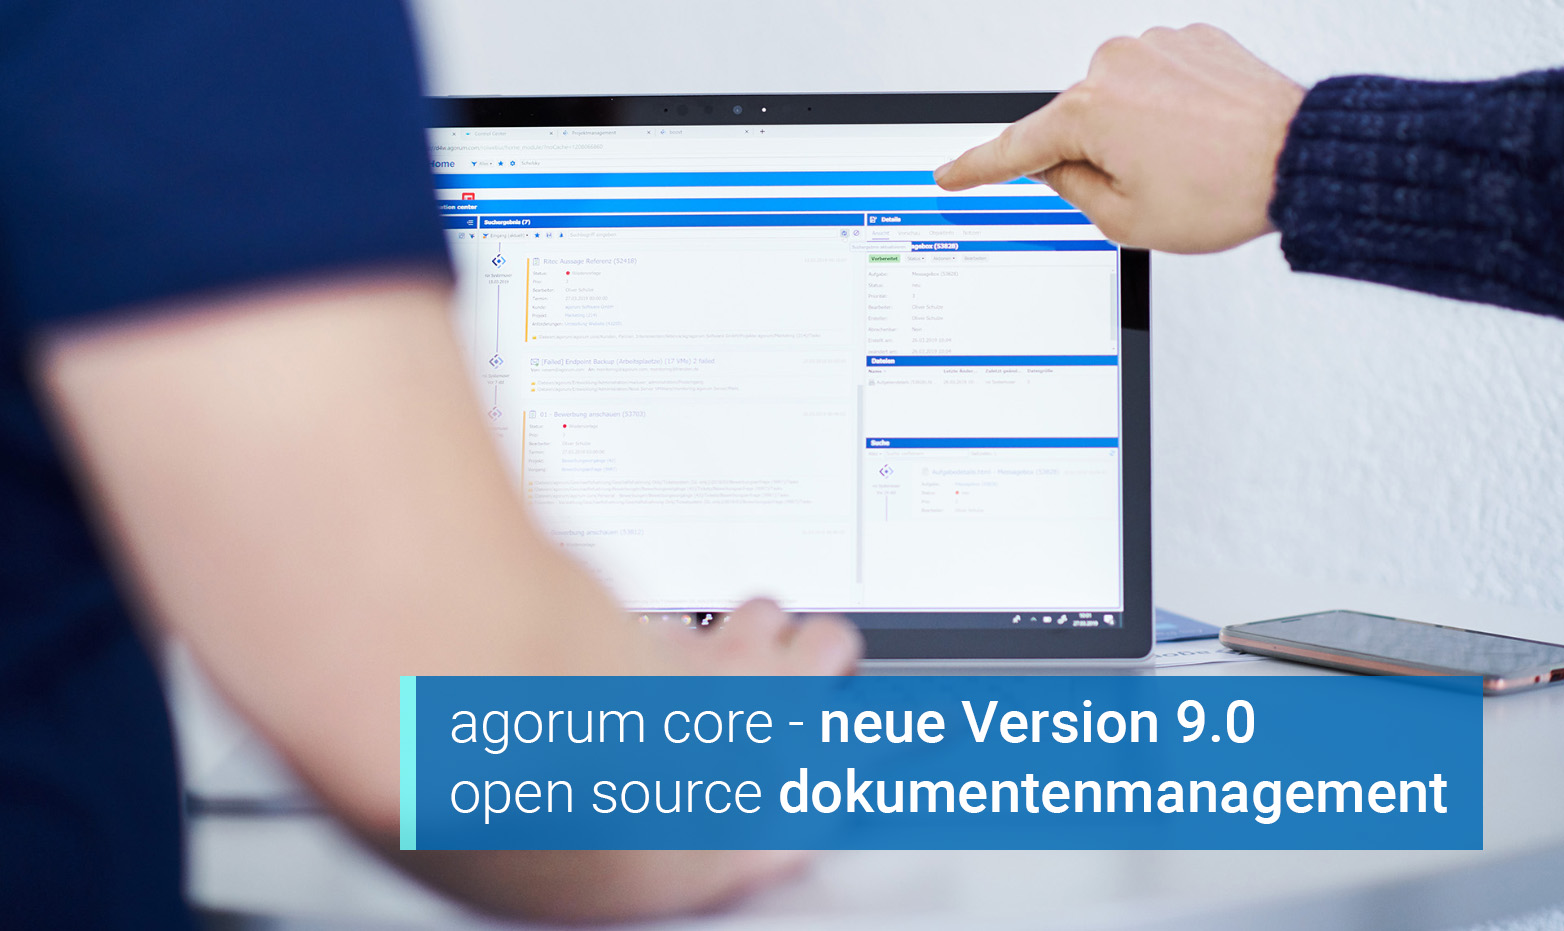 agorum core 9.0 - open source dokumentenmanagement